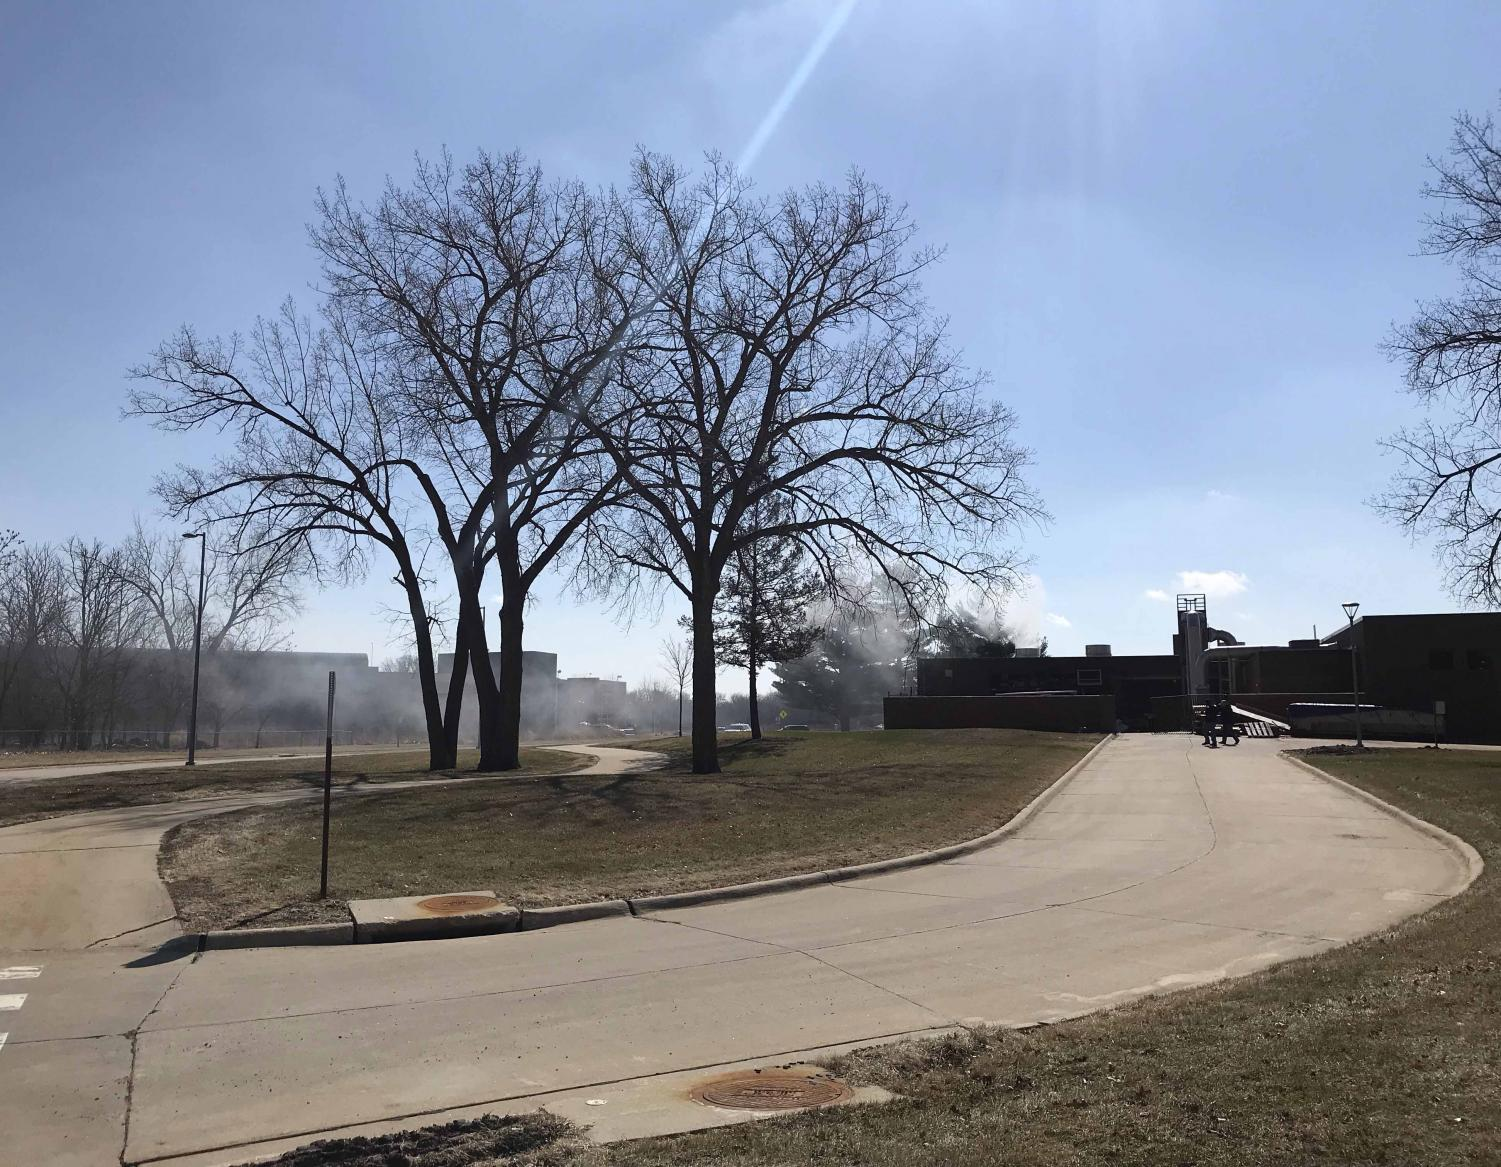 On Tuesday, April 3, at around 3 p.m., a kiln fire started in the Industrial Technology Center. The building did not suffer any serious damages and there were no injuries.